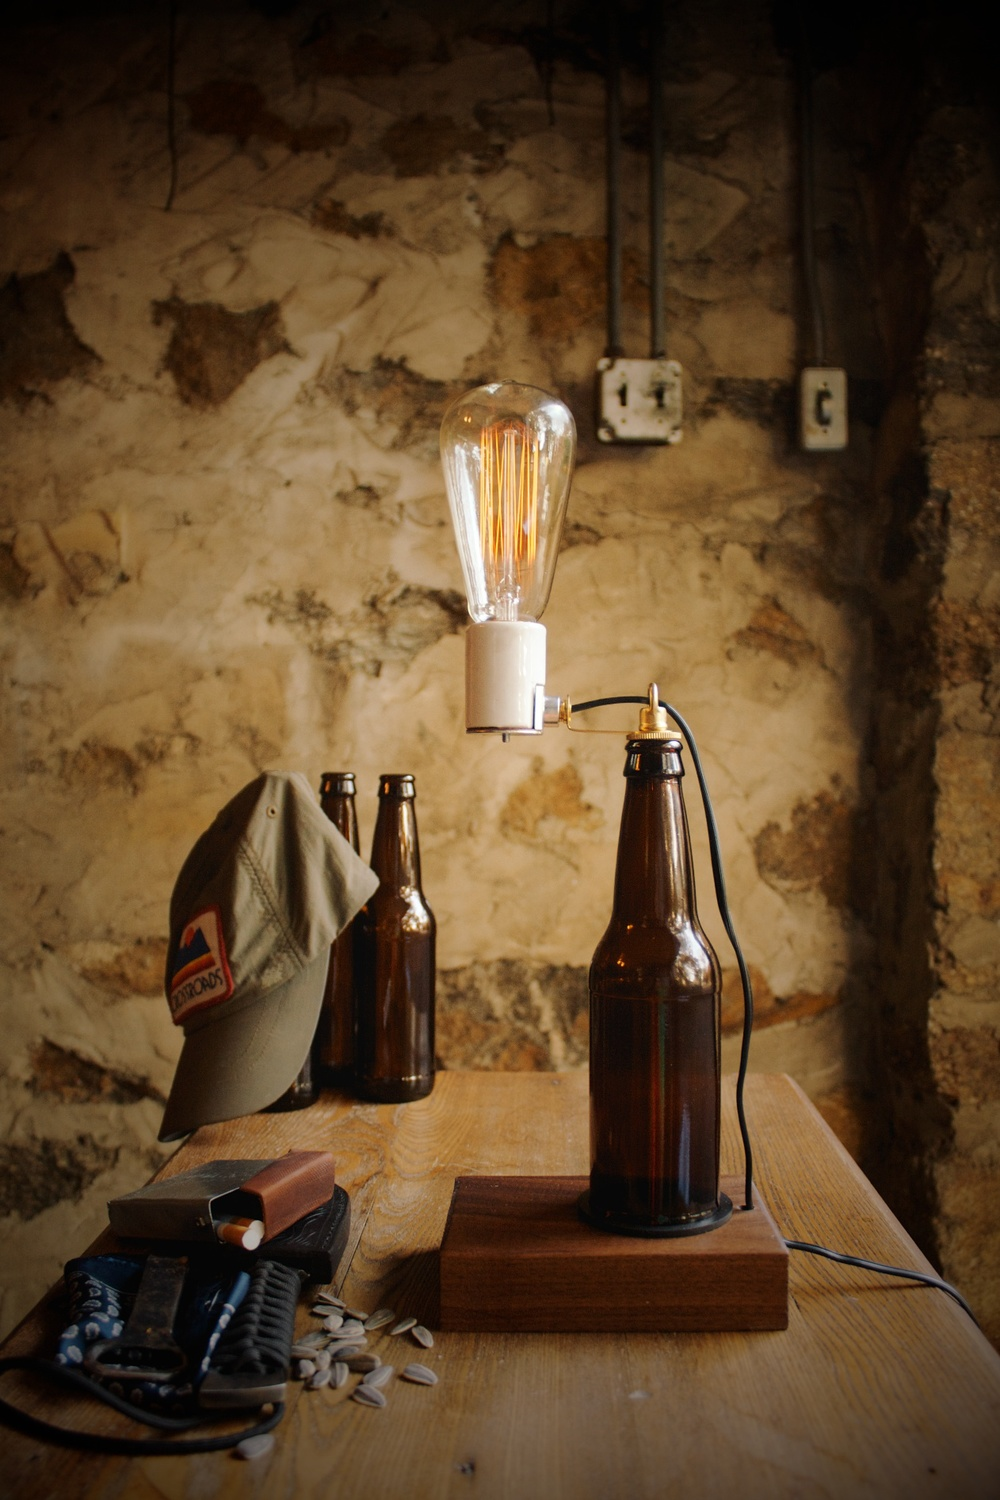 The Beer Lamp